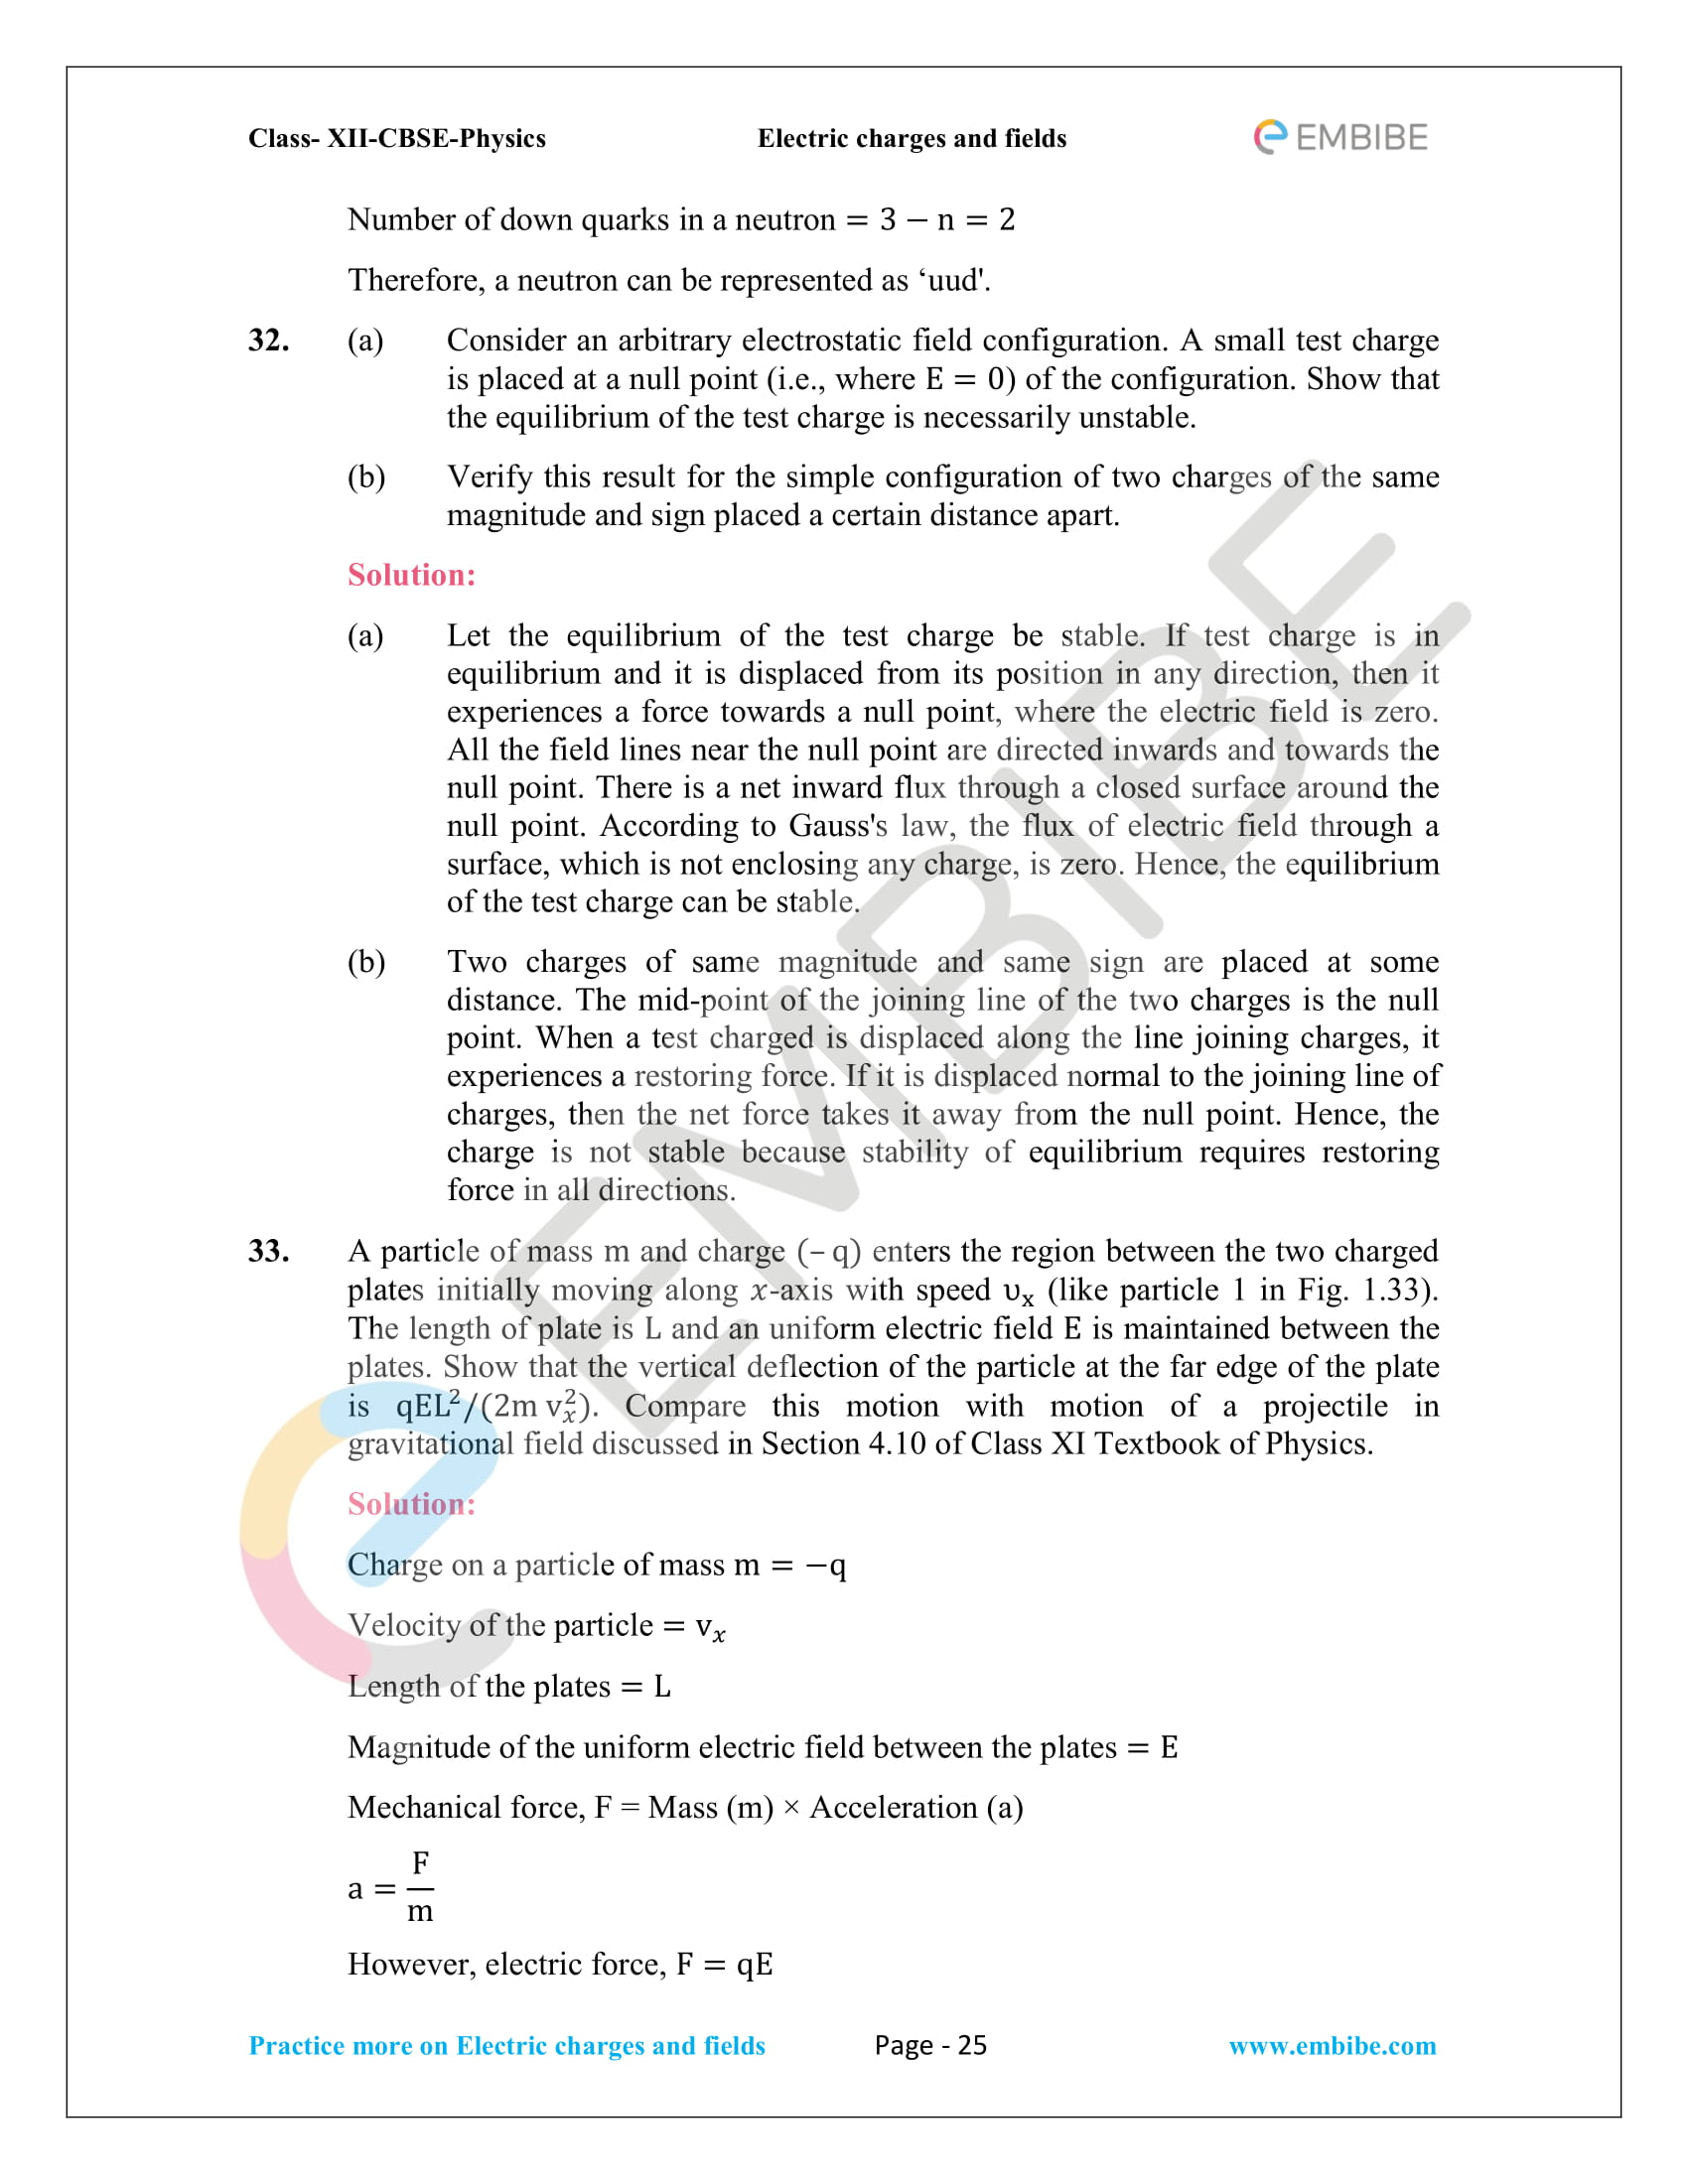 NCERT Solutions for Class 12 Physics Chapter 1 Electric Charges and Field embibe-25